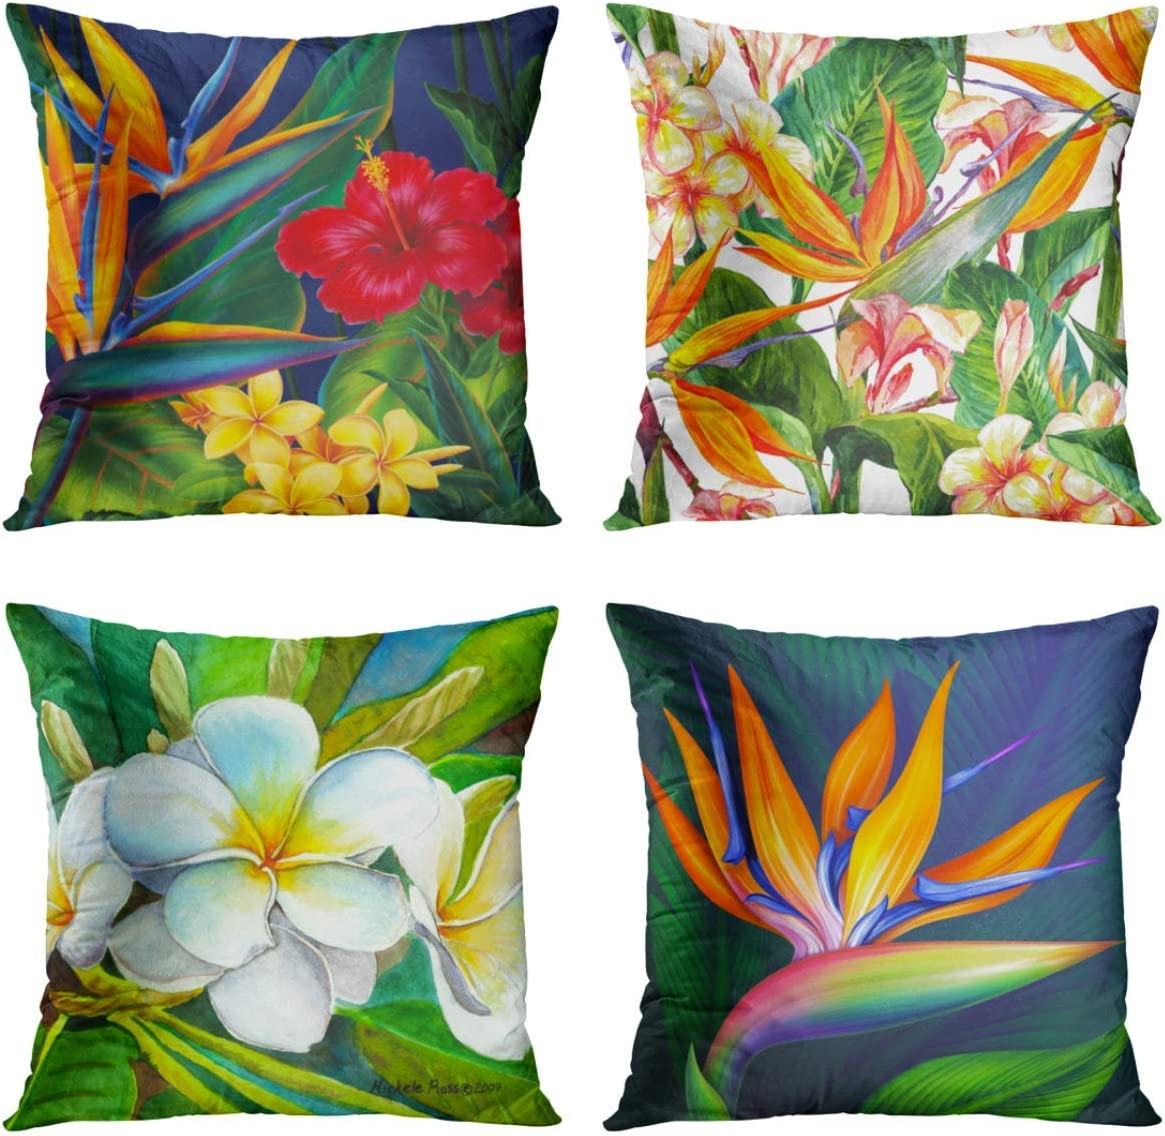 Britimes Throw Pillow Covers Home Decor Set of 4 Pillow Cases Decorative 18 x 18 Inches Outdoor Cushion Couch Sofa Pillowcases Tropical Flowers